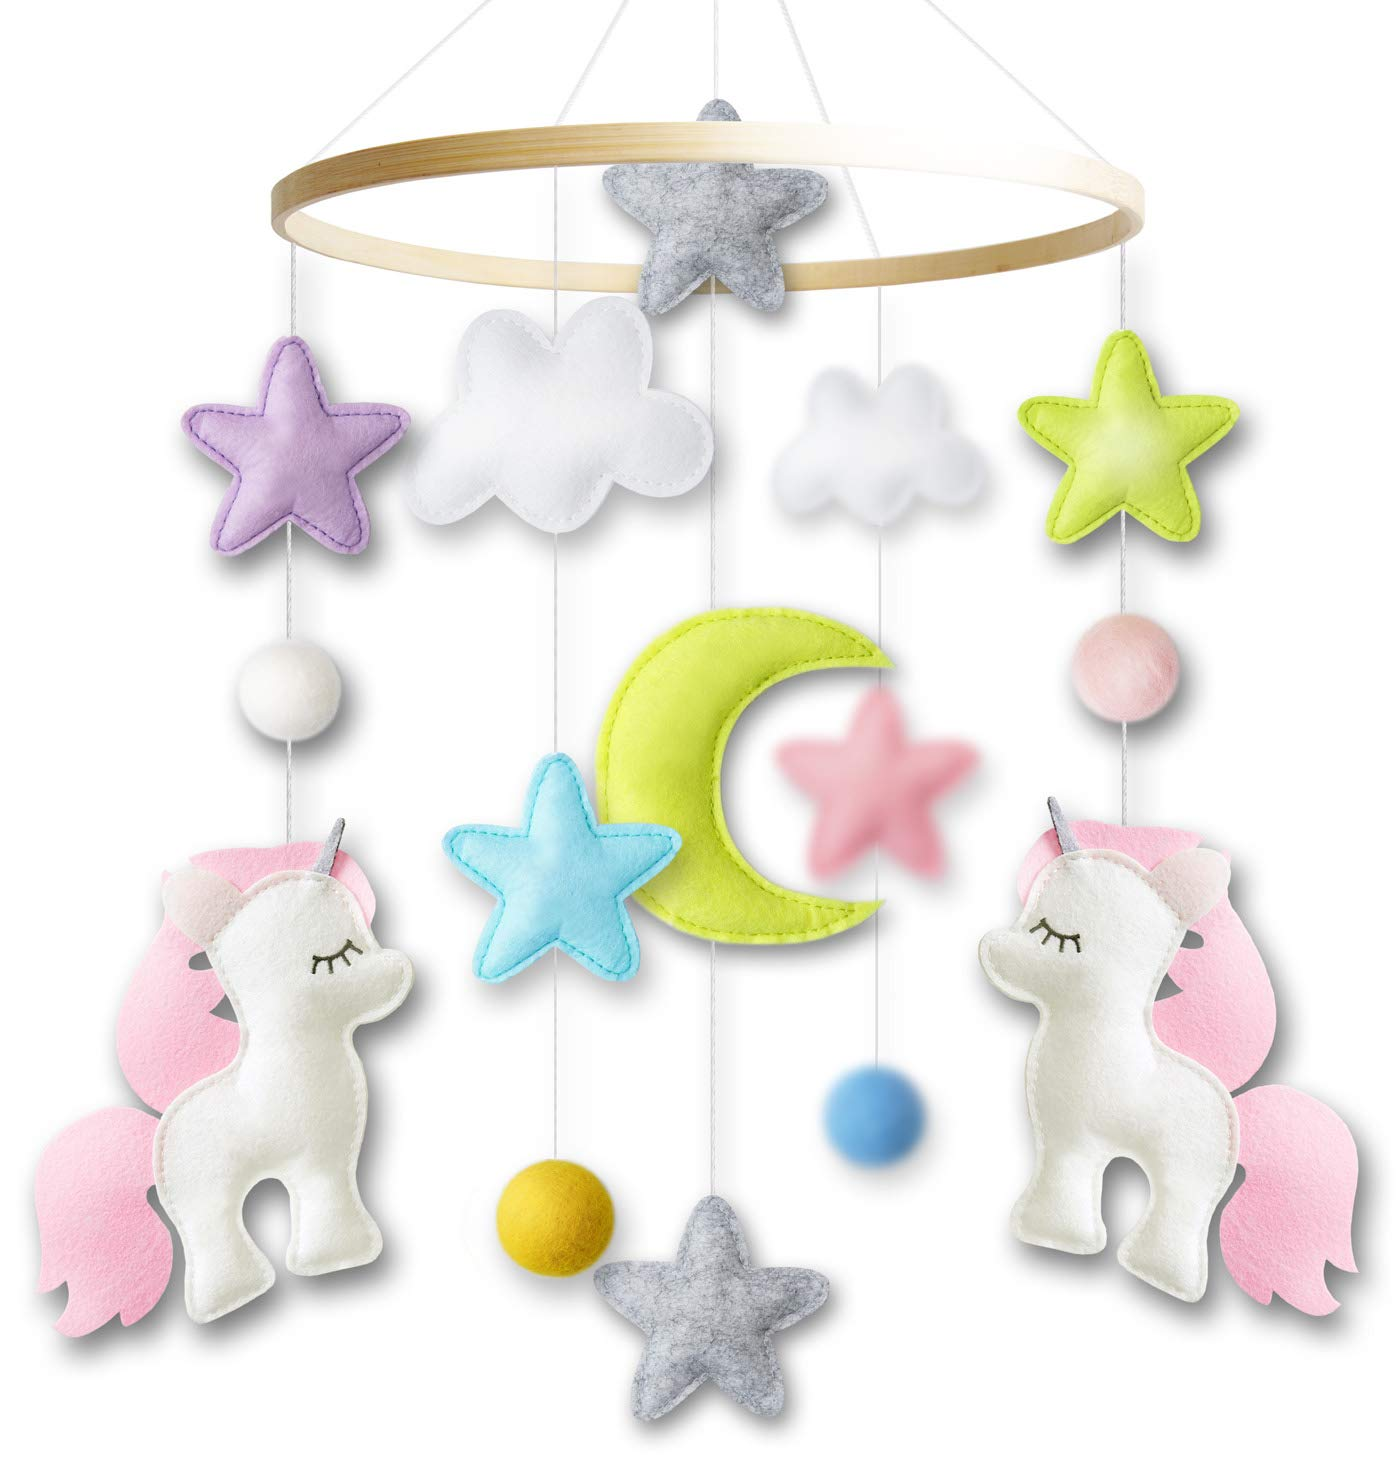 Baby Crib Free shipping New Mobile by Giftsfarm Girl Lowest price challenge Nurs for Unicorn